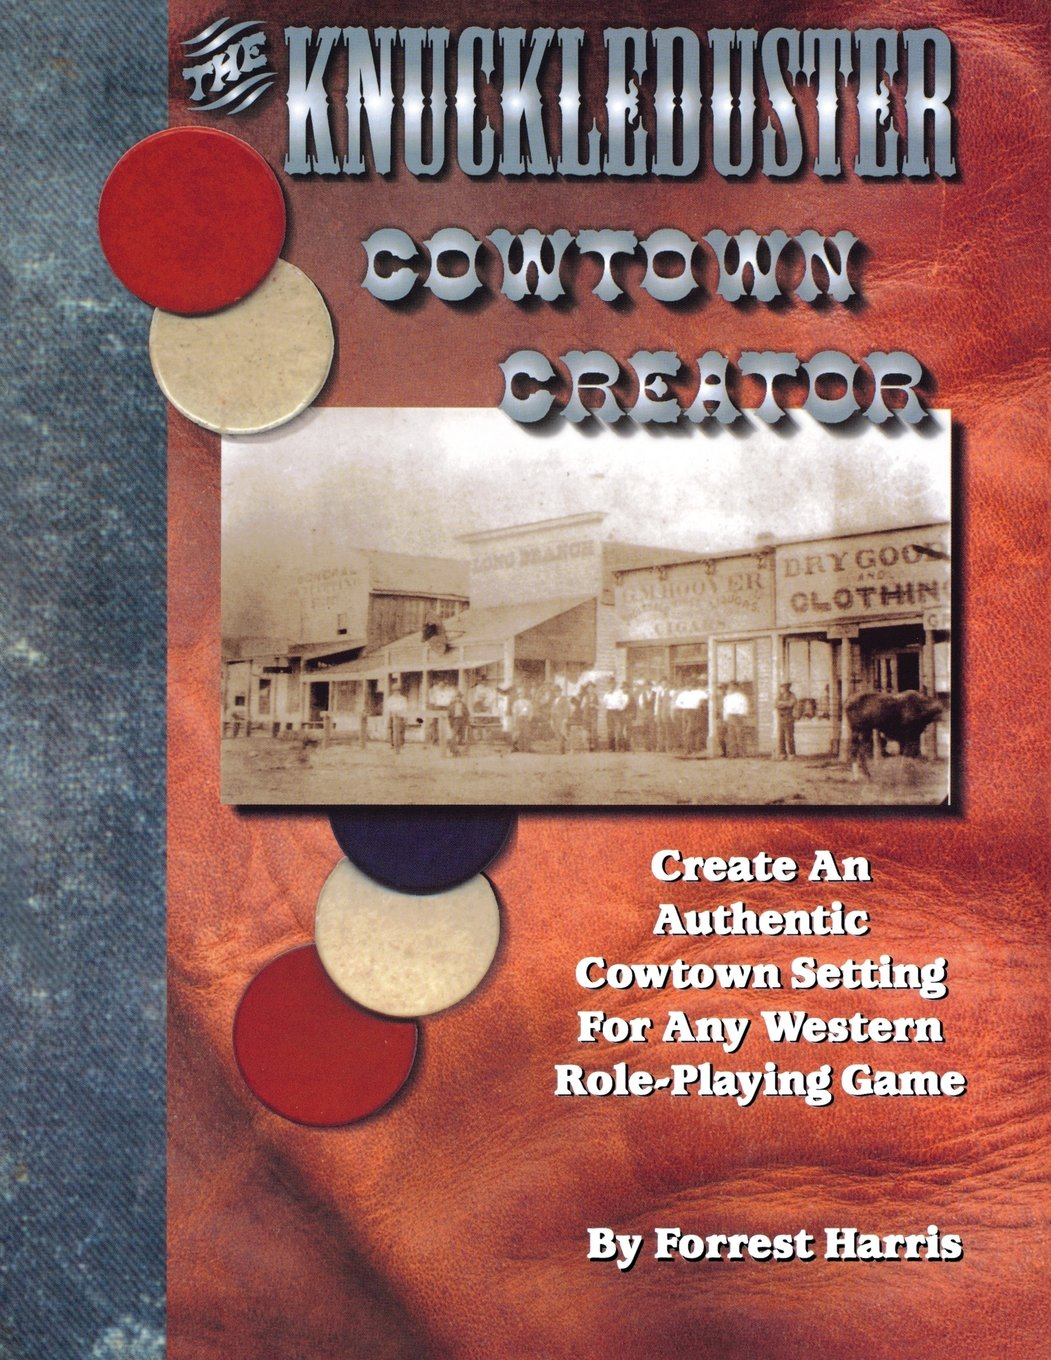 Read Online The Knuckleduster Cowtown Creator; Create and Authentic Cowtown Setting for any Western Role-Playing Game pdf epub